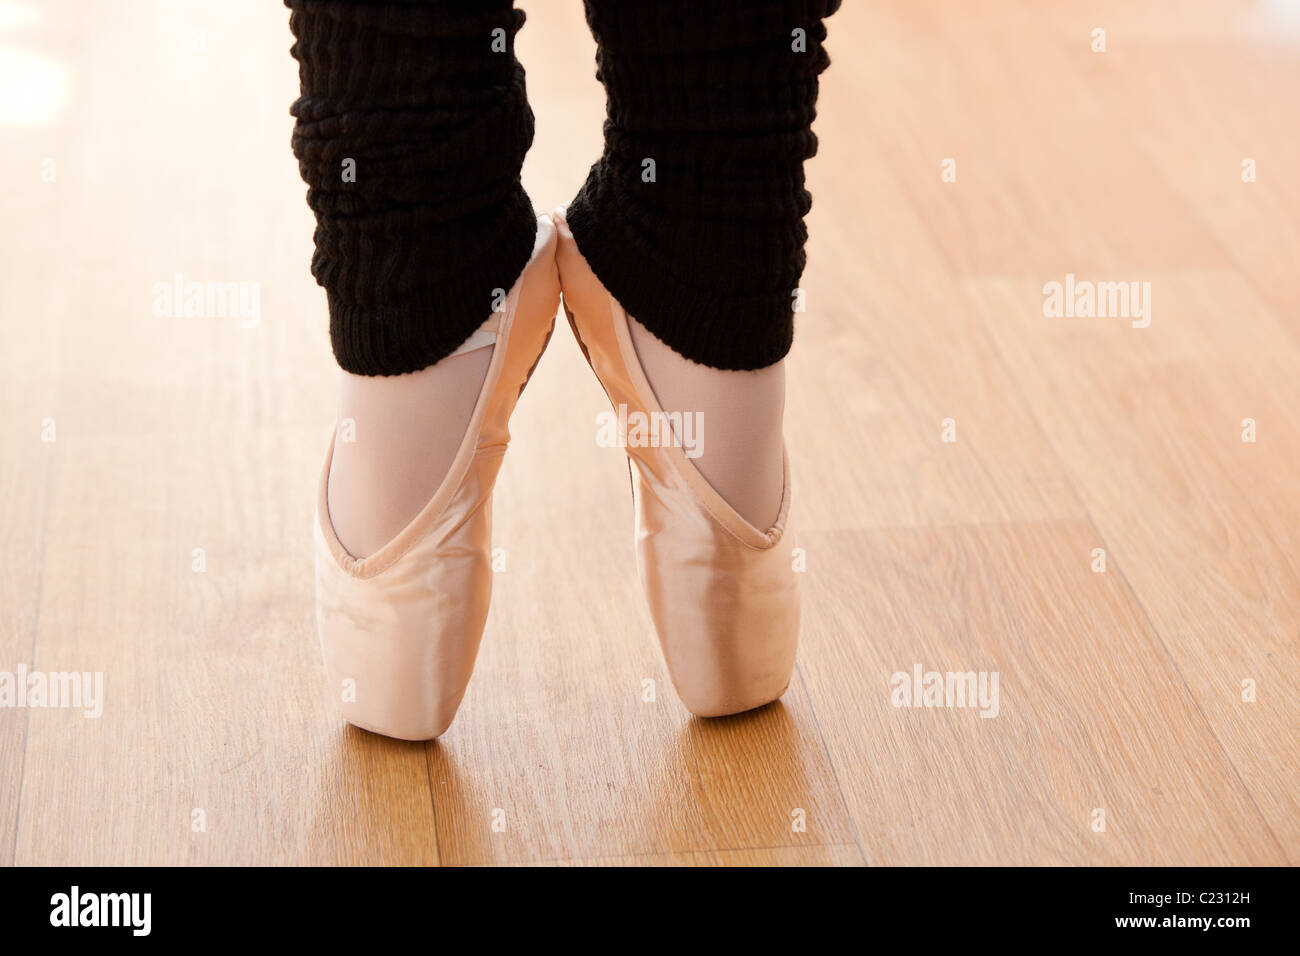 Close-up of a talented ballerina on tiptoe - Stock Image